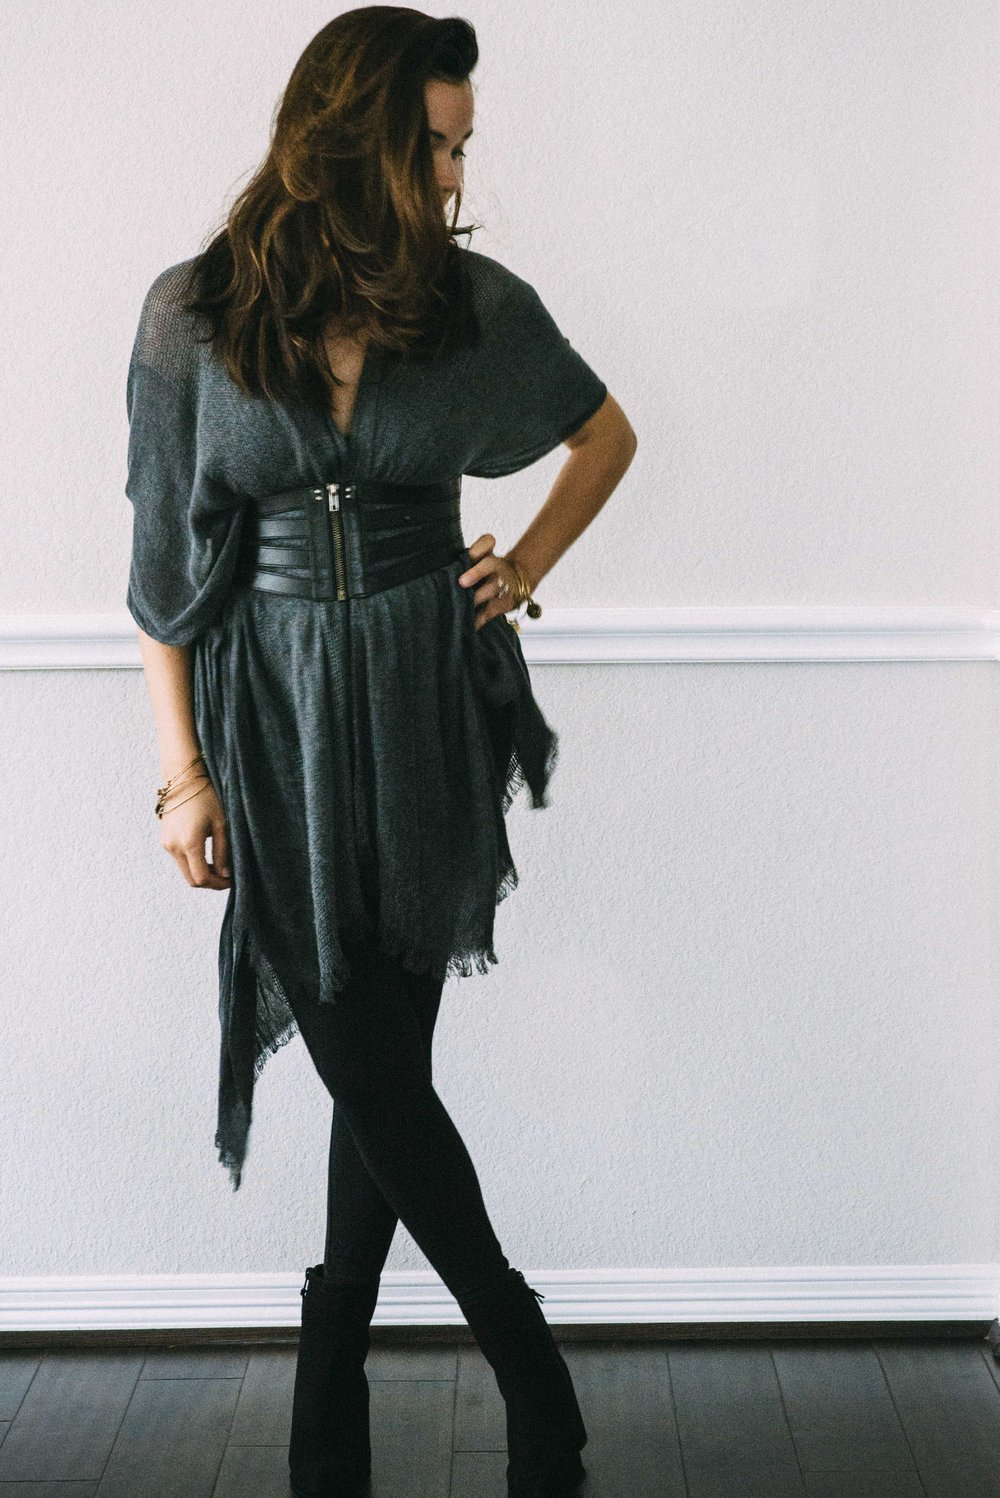 low-key-chic-jumpsuit-kimono-fall-transition-outfit